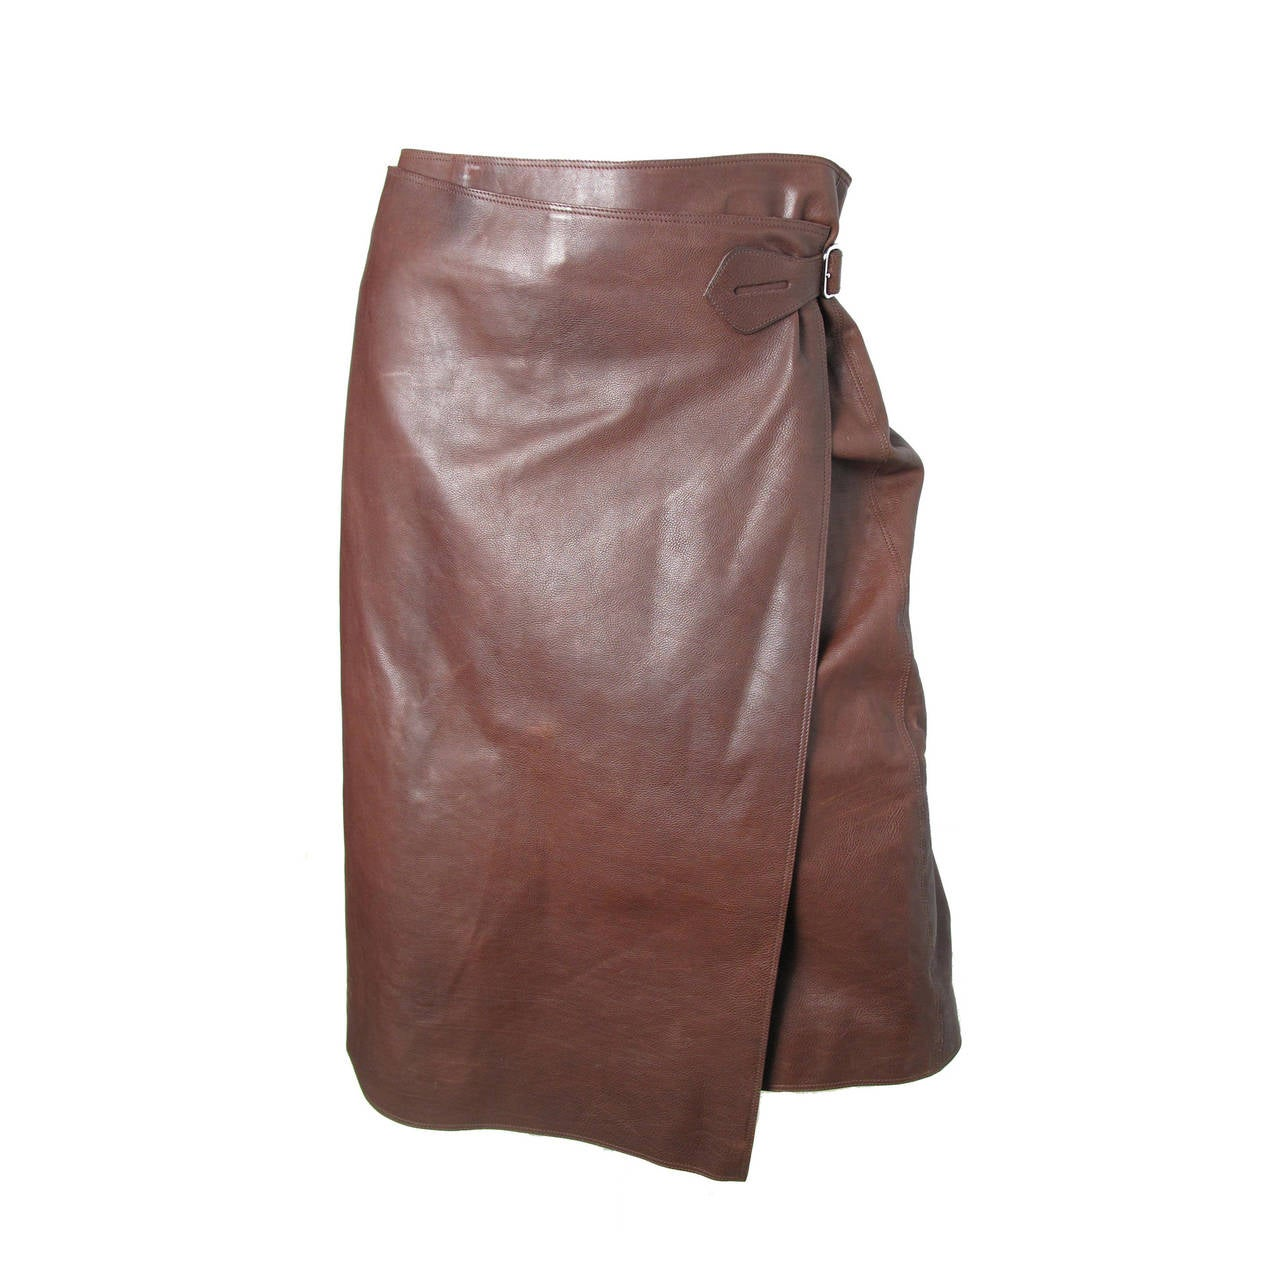 Hermes Rich Dark Brown Leather Wrap Skirt with Buckle 1